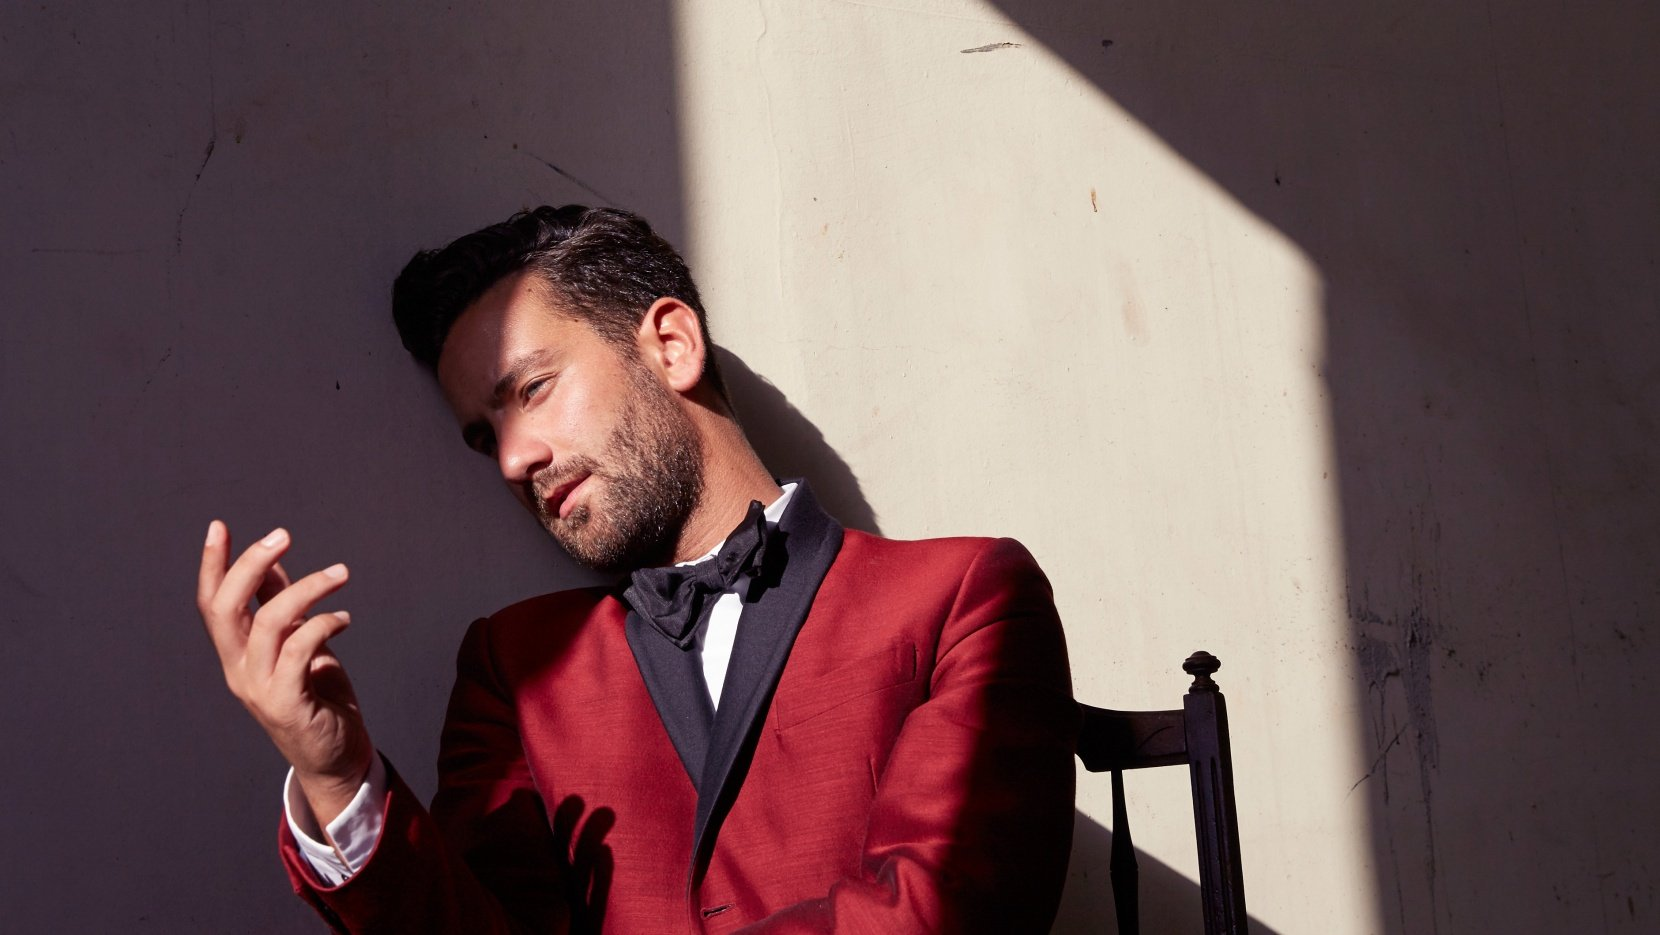 The 10 Rules of Being a Gentleman by Matthew Zorpas